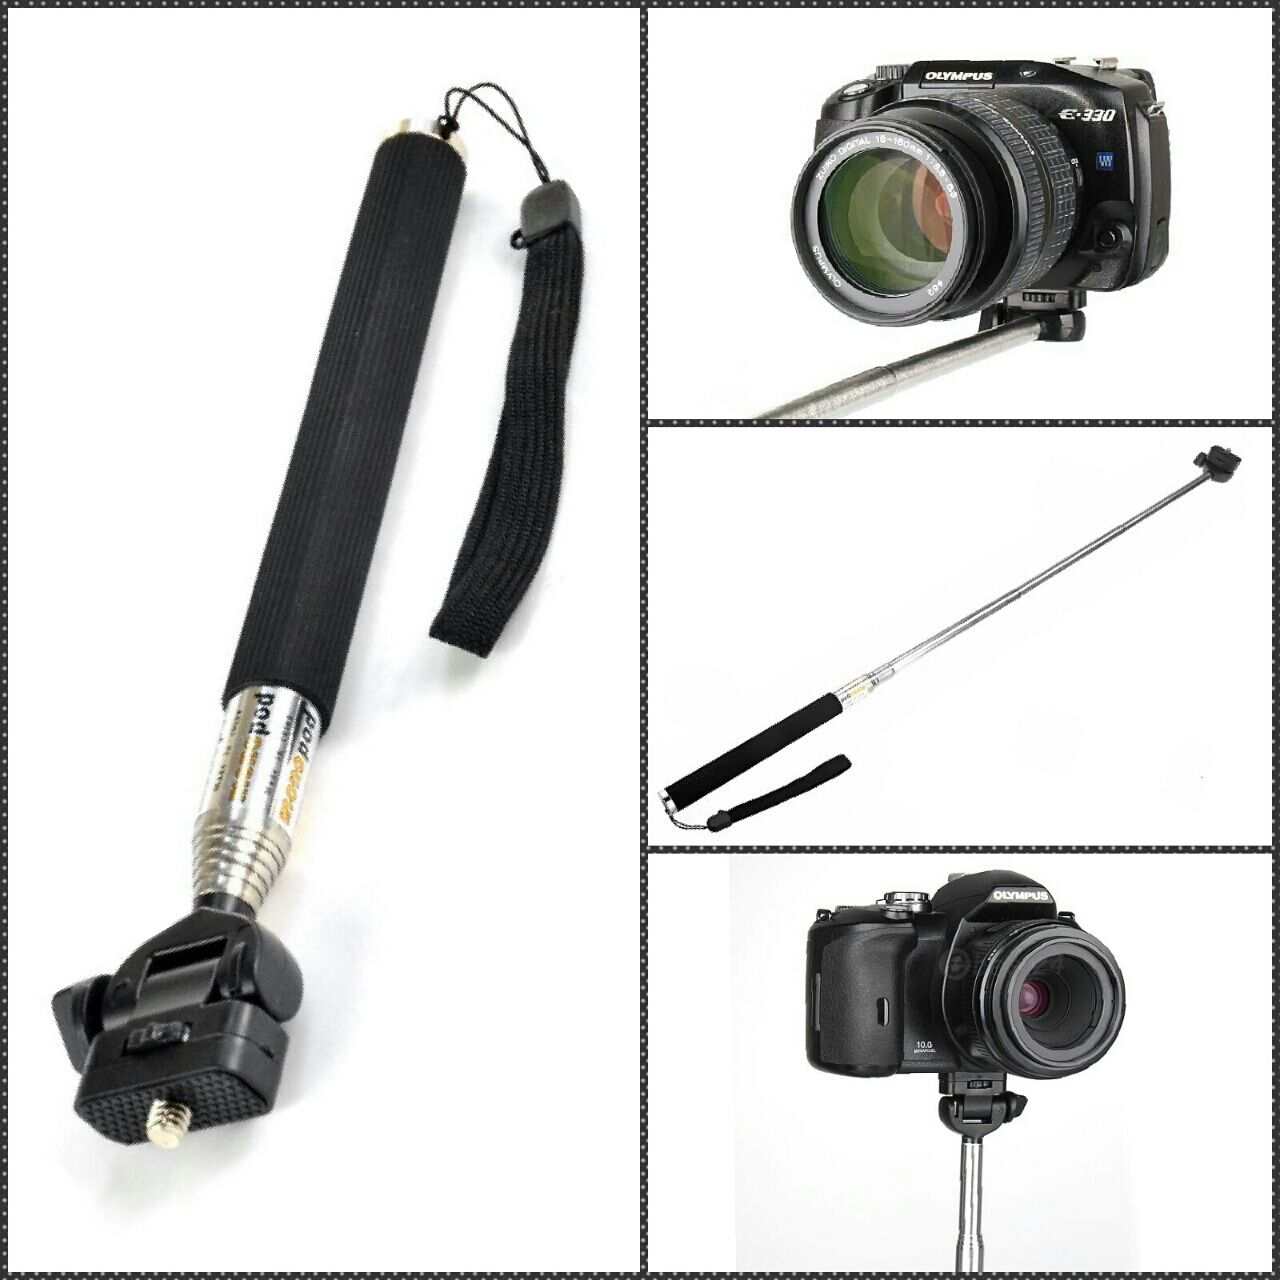 extendable monopod stand selfie stick for digital camera kodak nikon sony canon. Black Bedroom Furniture Sets. Home Design Ideas